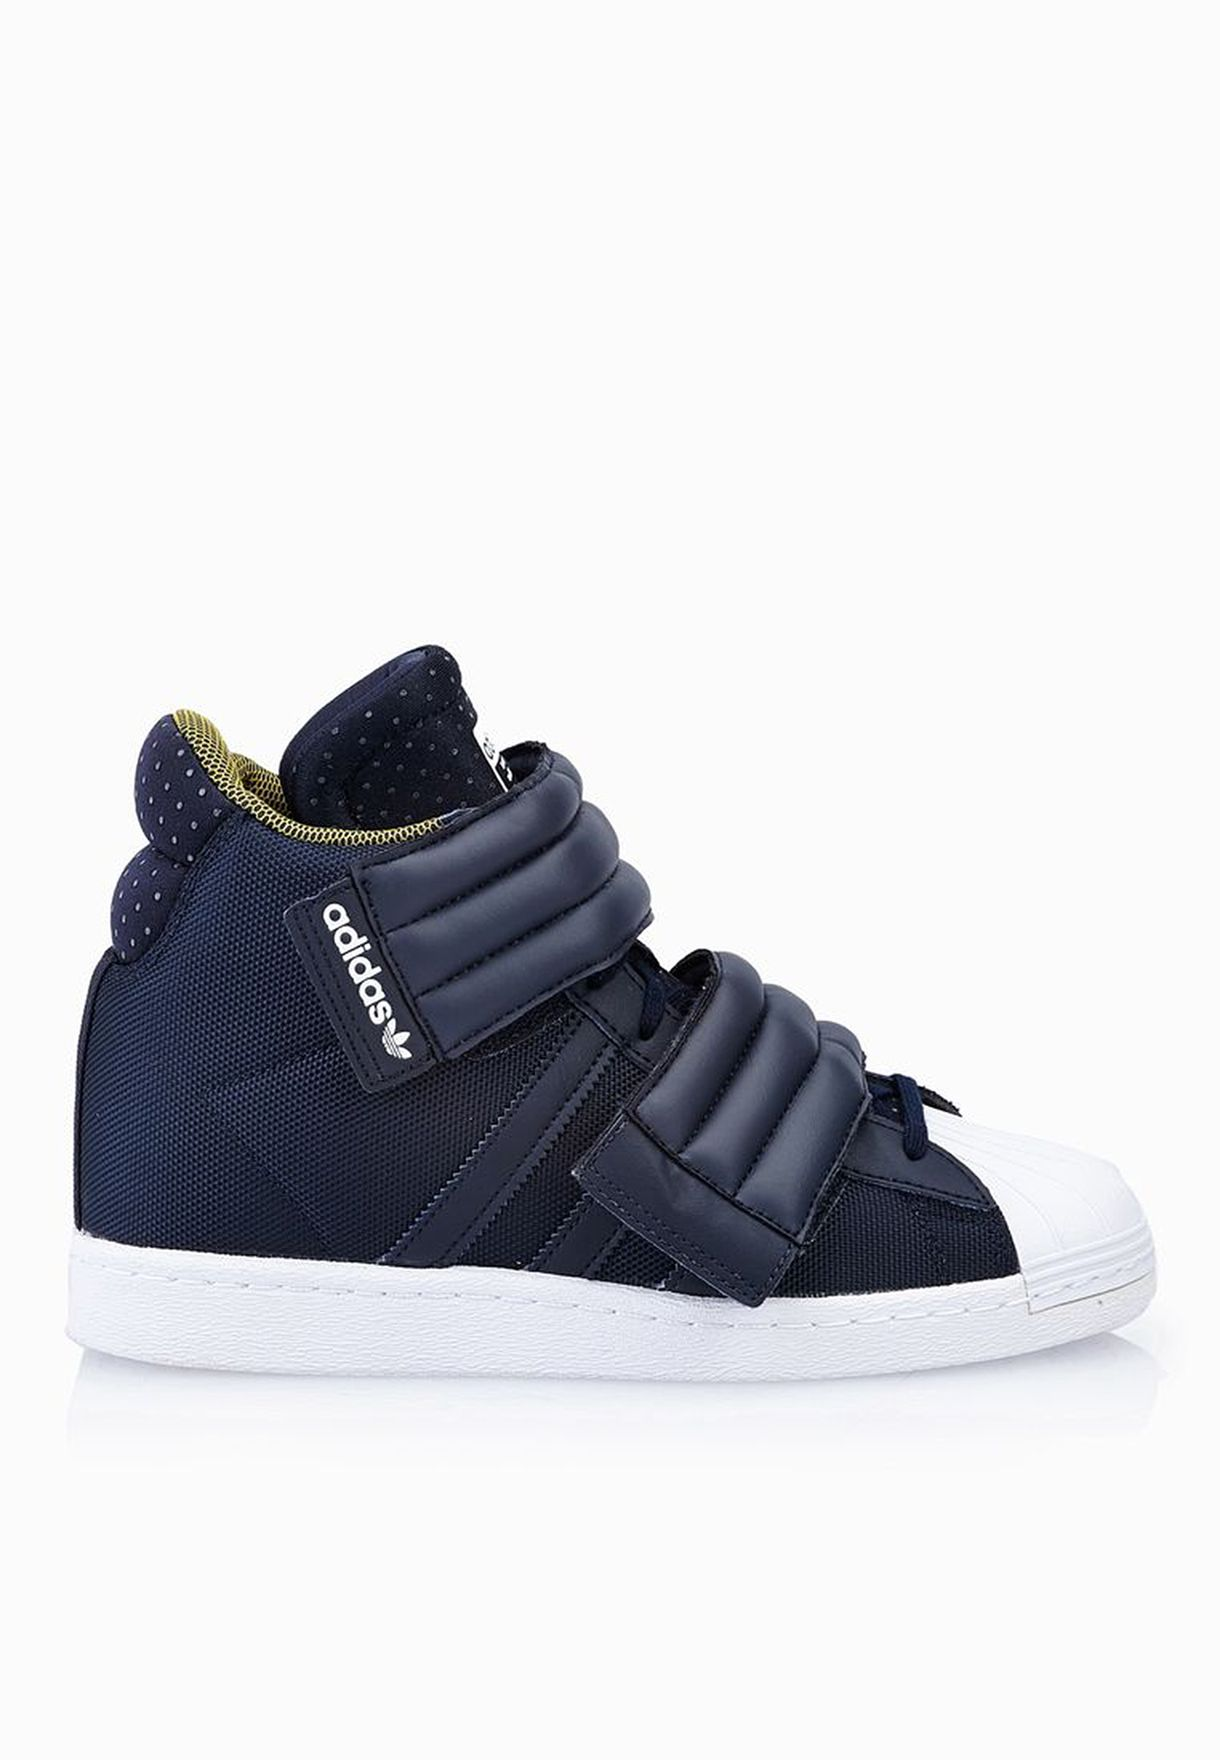 hot sales fe55b e49a6 ... rita ora superstar up 2 strap sneakers shoes s82794 04181 29d5a  ebay  shop adidas originals blue superstar up 2strap sneakers s82794 for women in  uae ...